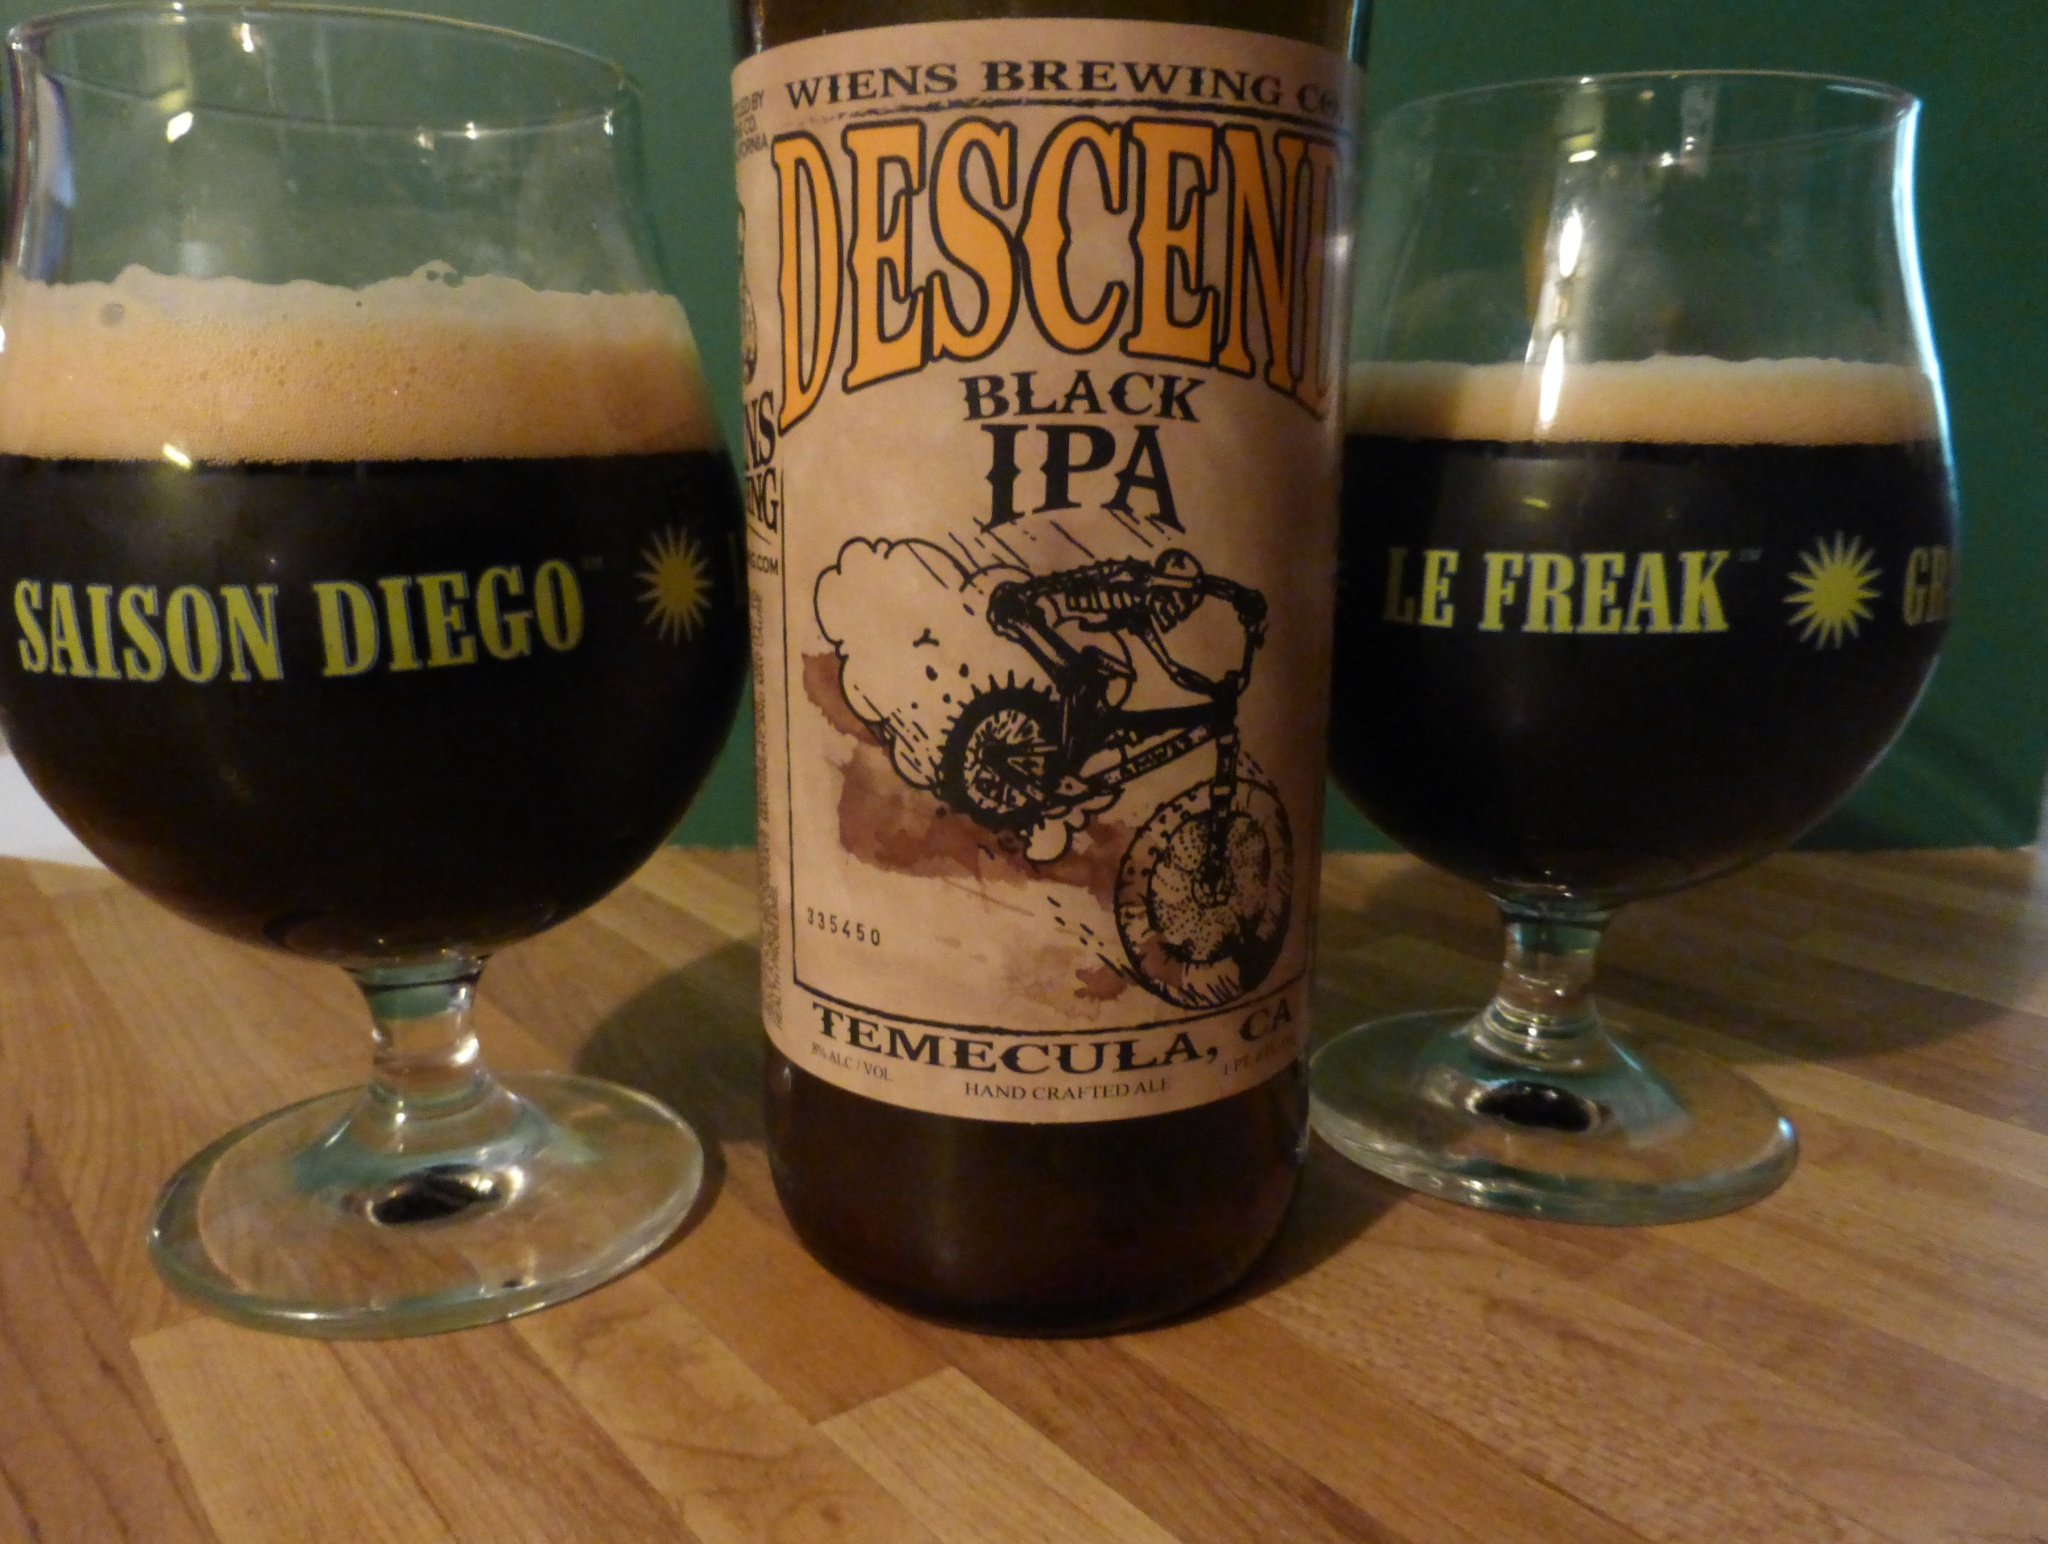 Descend Black Ipa